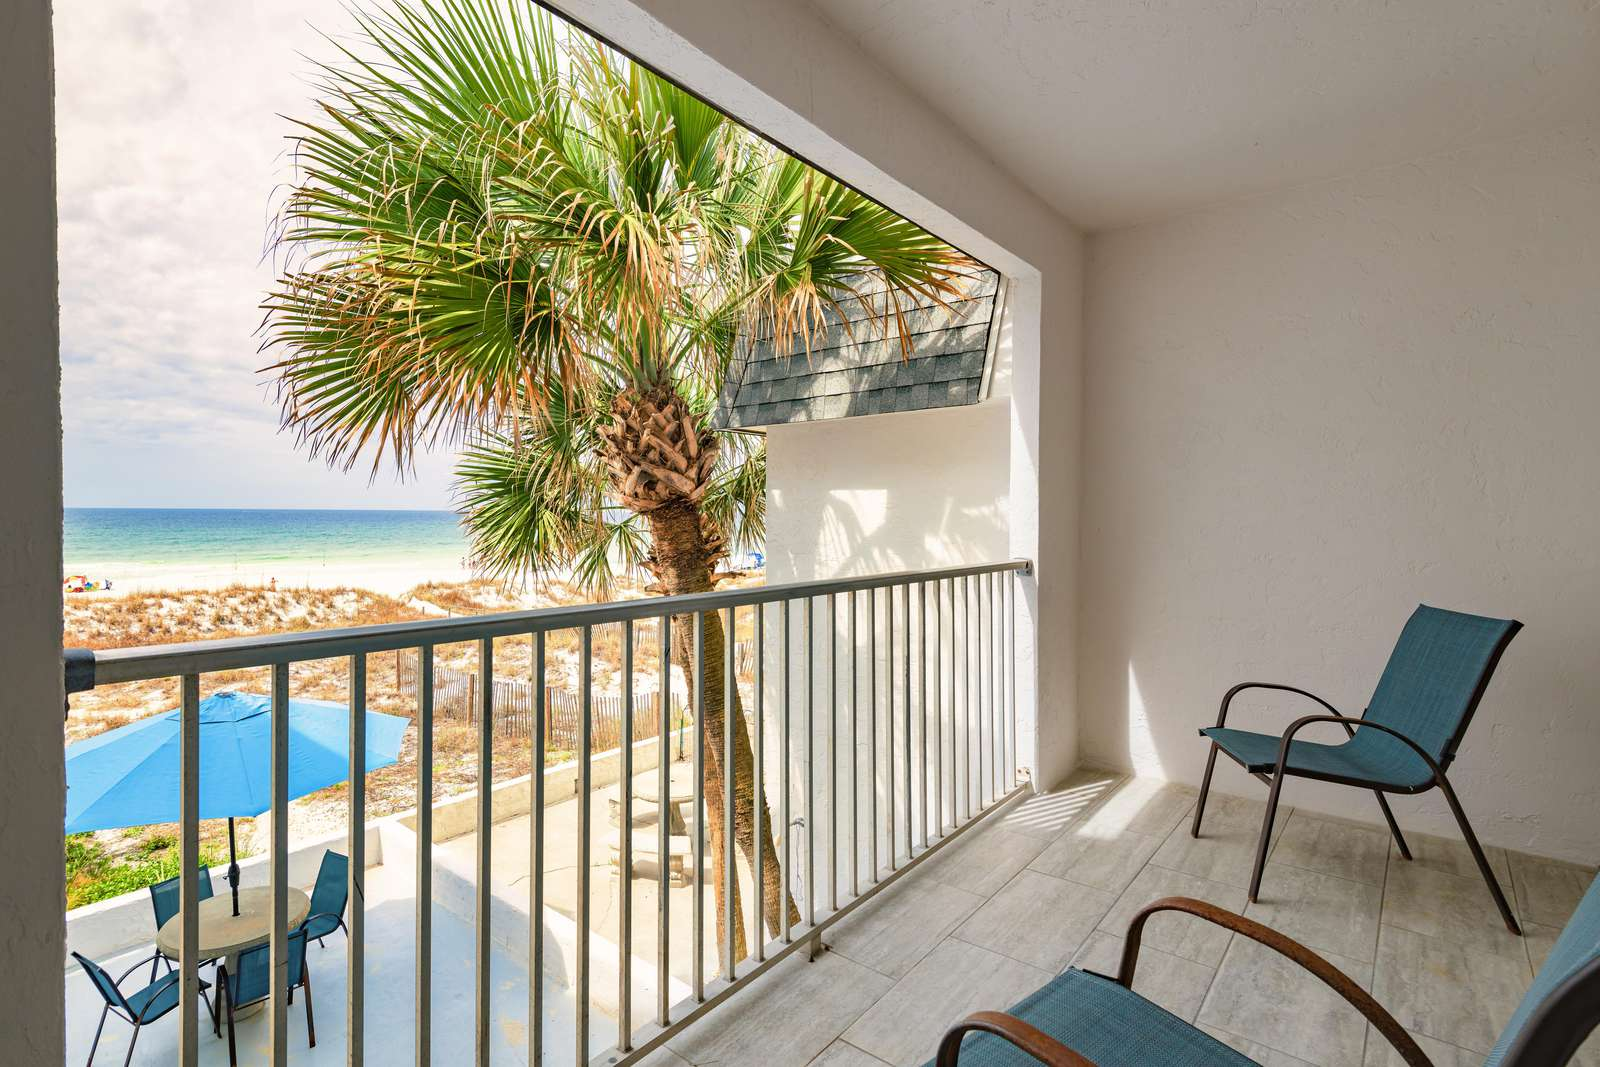 Private master balcony with amazing views!